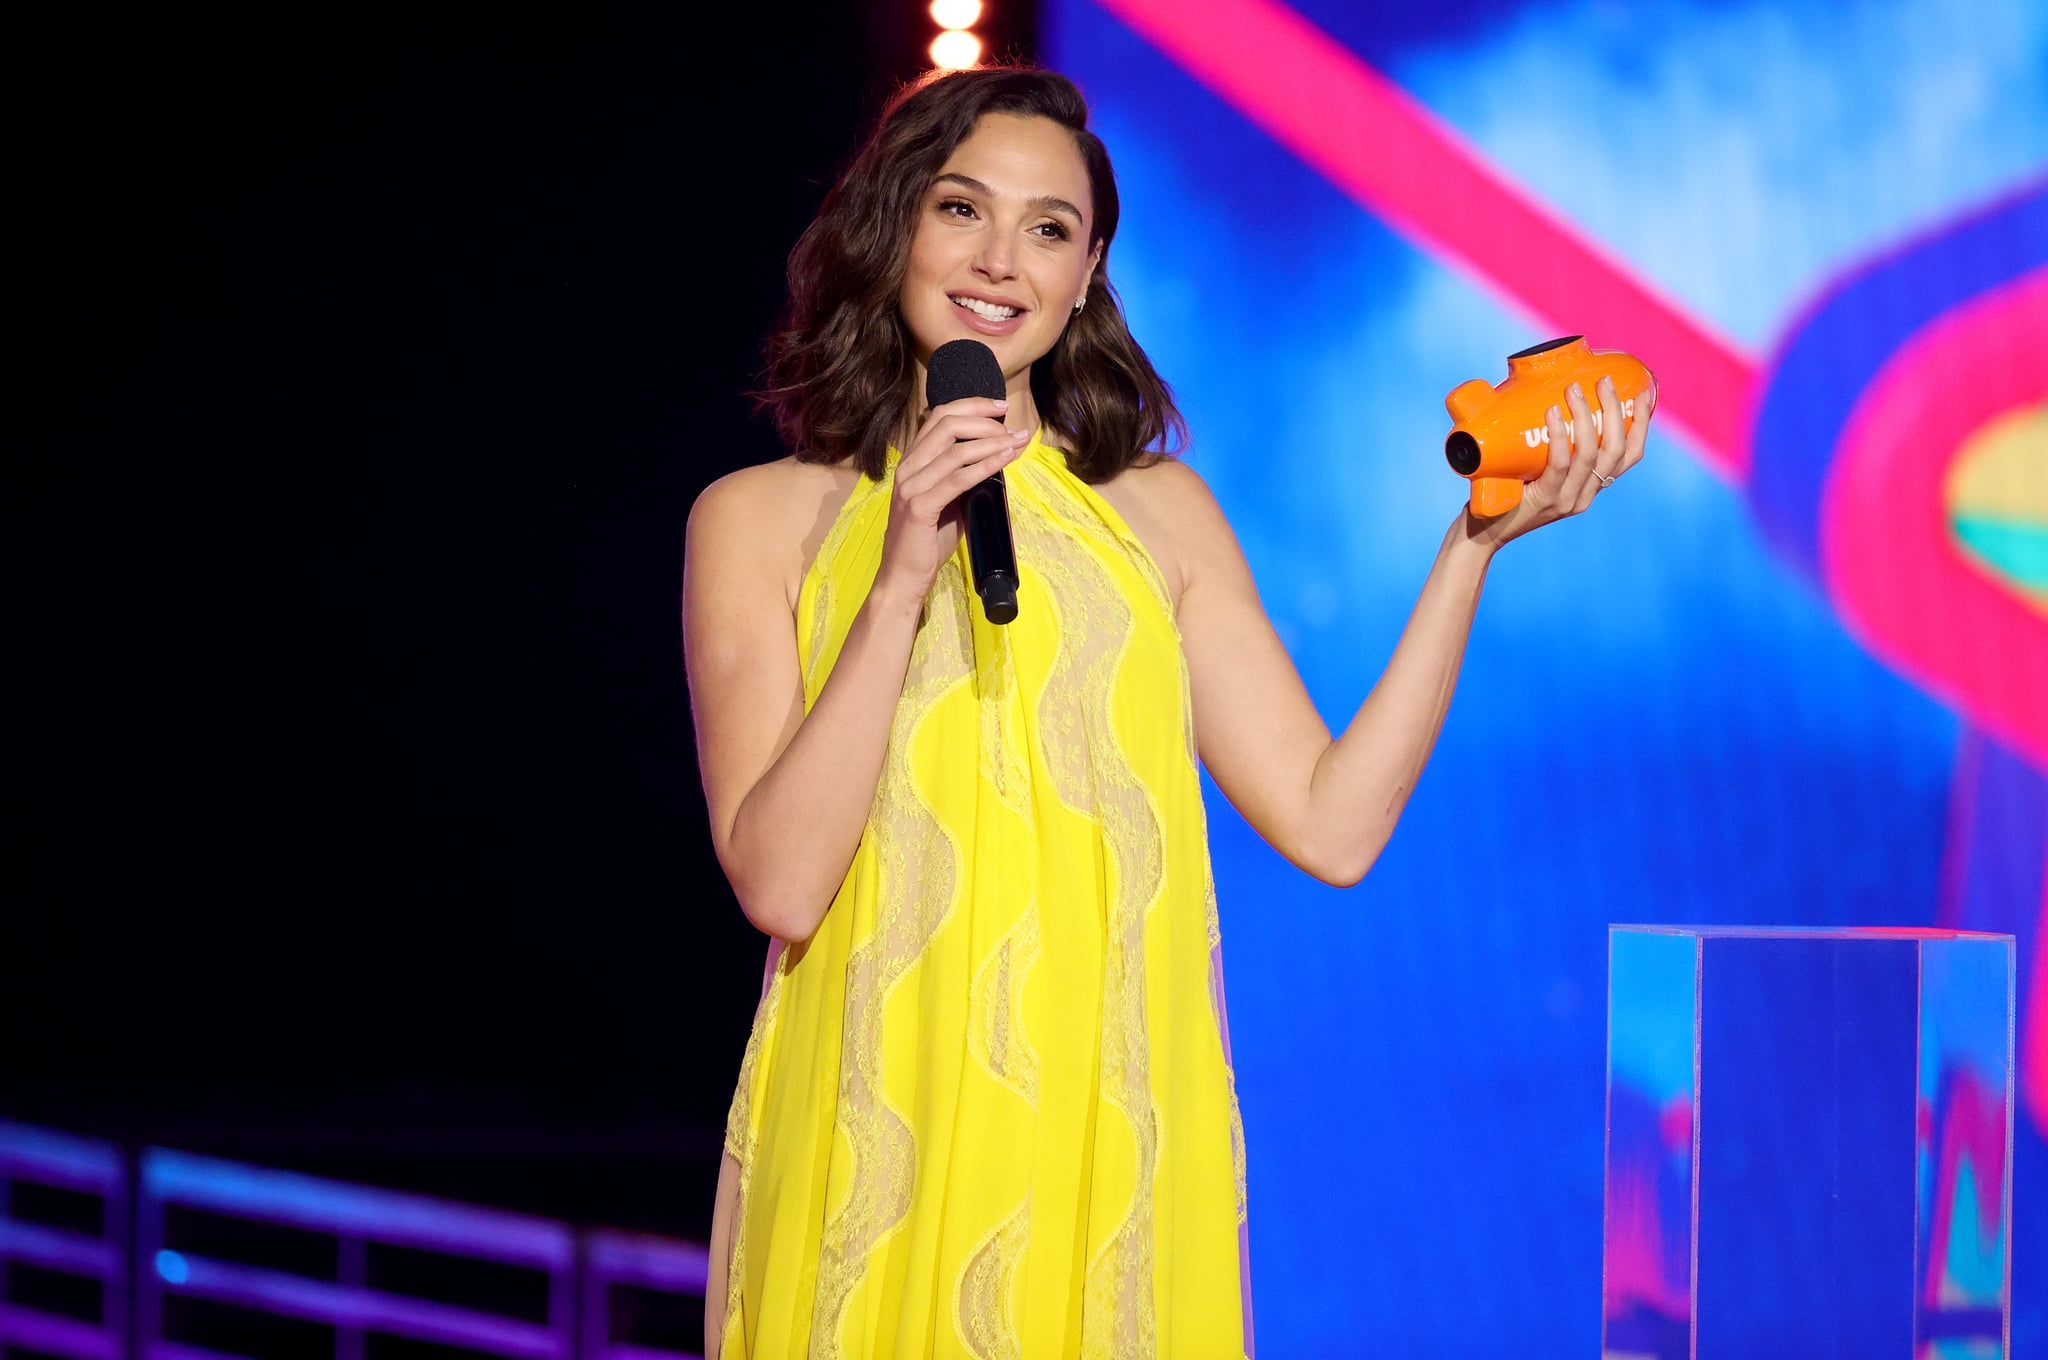 SANTA MONICA, CALIFORNIA - MARCH 13: In this image released on March 13, Gal Gadot speaks onstage during Nickelodeon's Kids' Choice Awards at Barker Hangar on March 13, 2021 in Santa Monica, California. (Photo by Rich Fury/KCA2021/Getty Images for Nickelodeon)